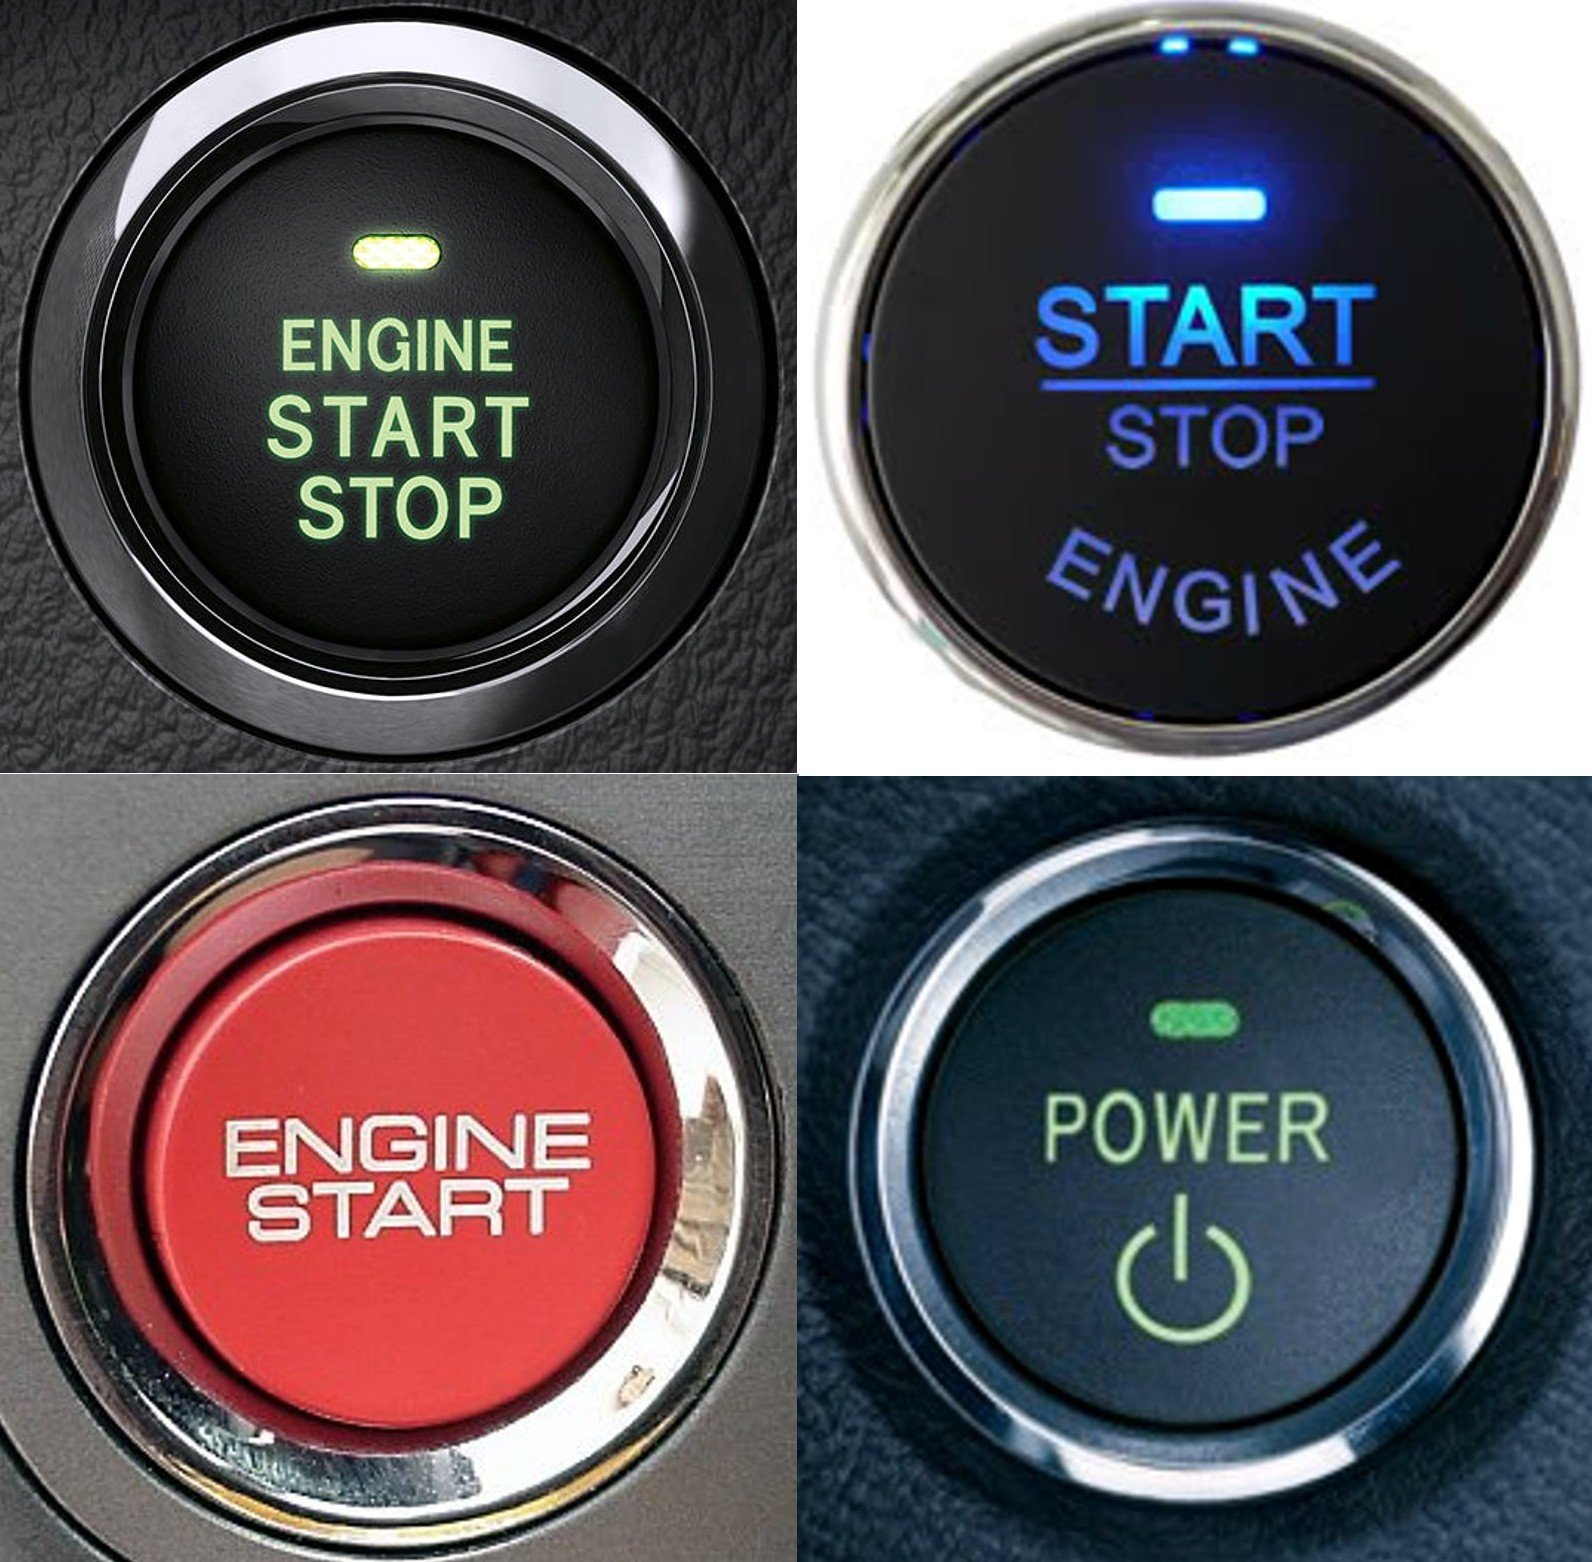 Remote Start for Toyota PRIUS V 2012-2016 ''Push-To-Start'' Models ONLY Includes Factory T-Harness for Quick, Clean Installation